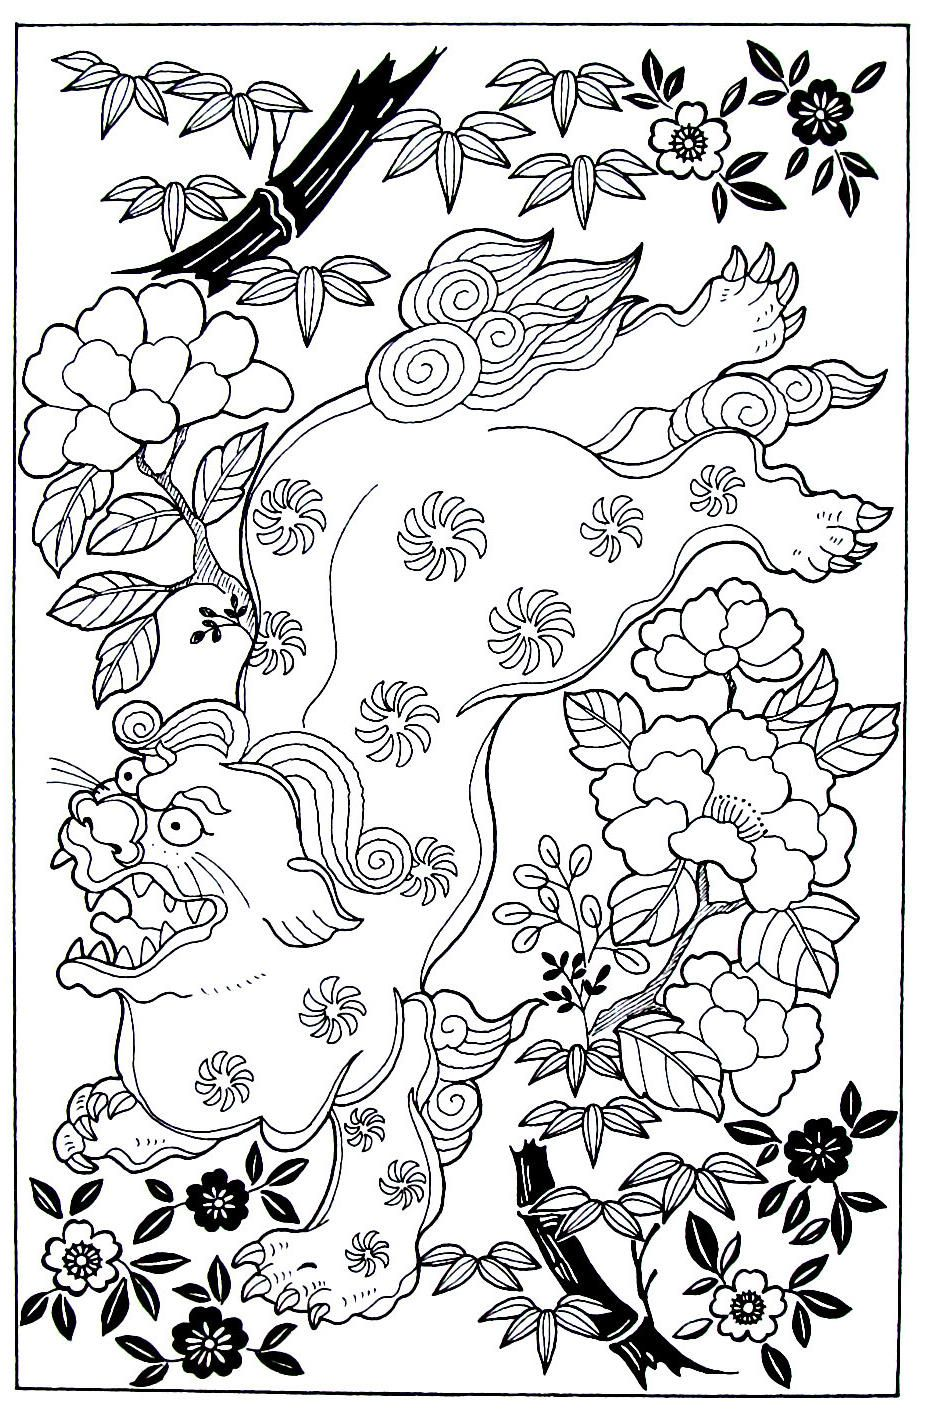 Lion Peonies And Bamboo Japanese Coloring Book Printable Page Coloring Books Coloring Book Pages Color